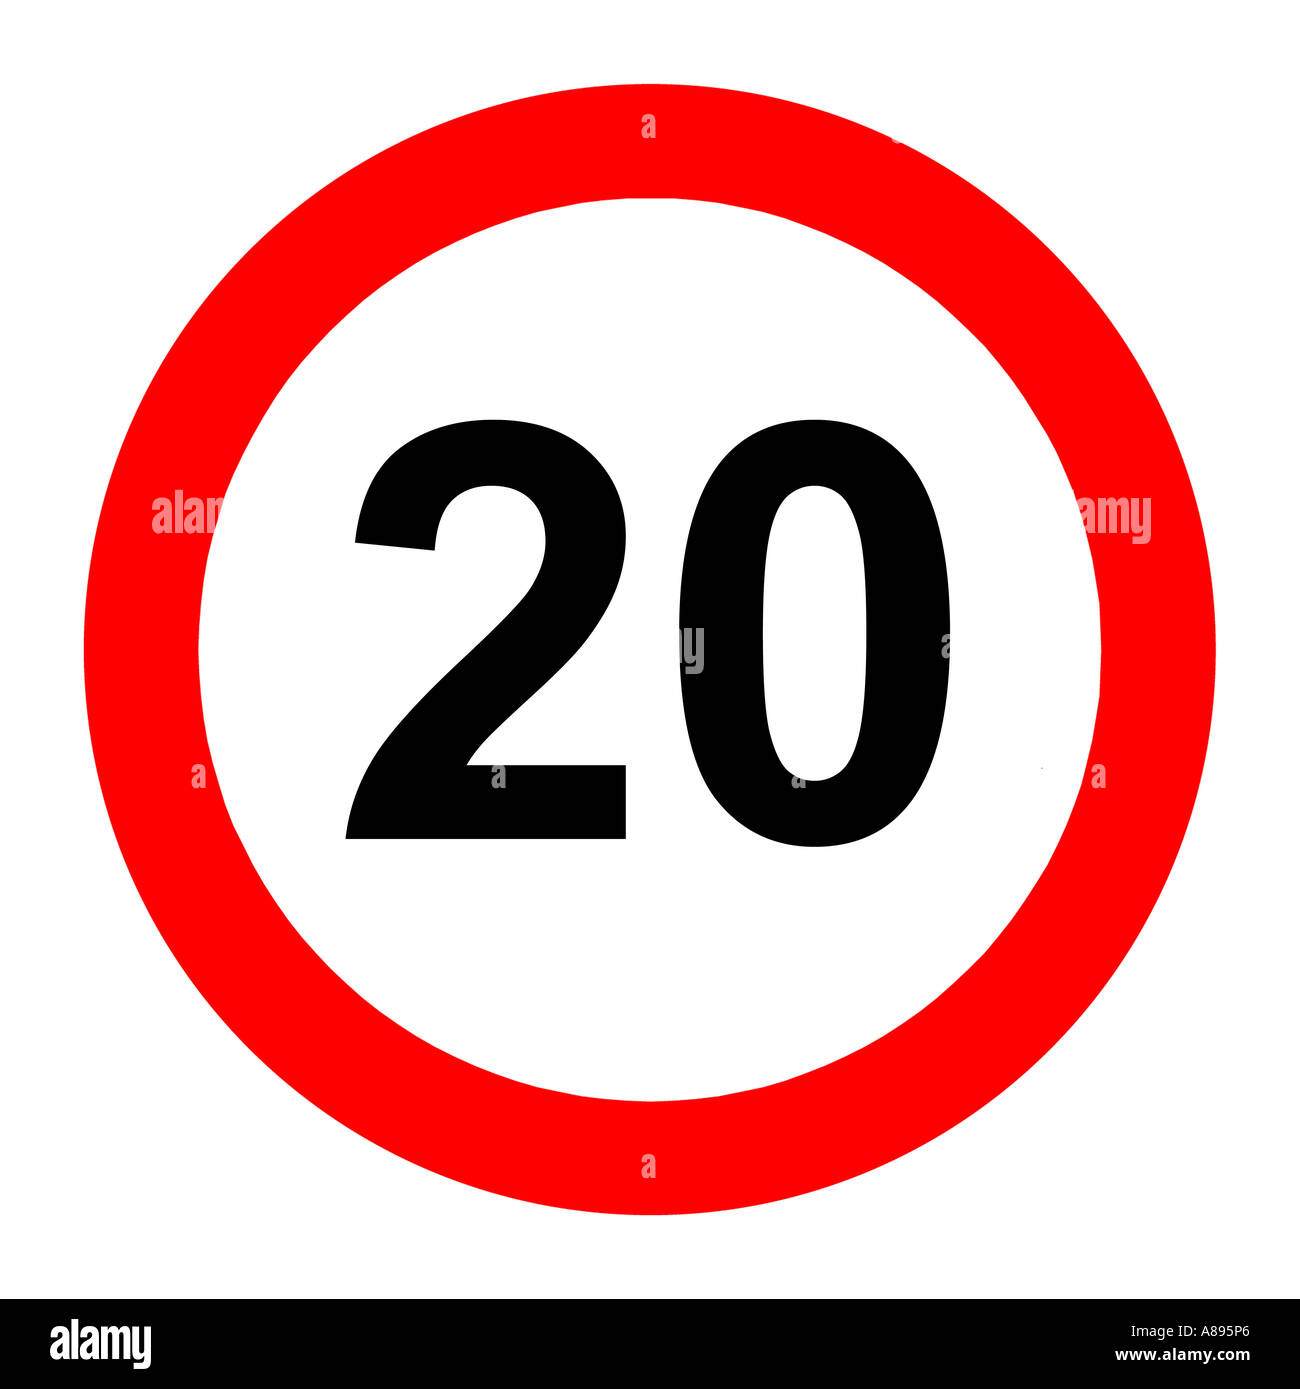 Twenty (20) miles per hour speed limit road sign on white background ...